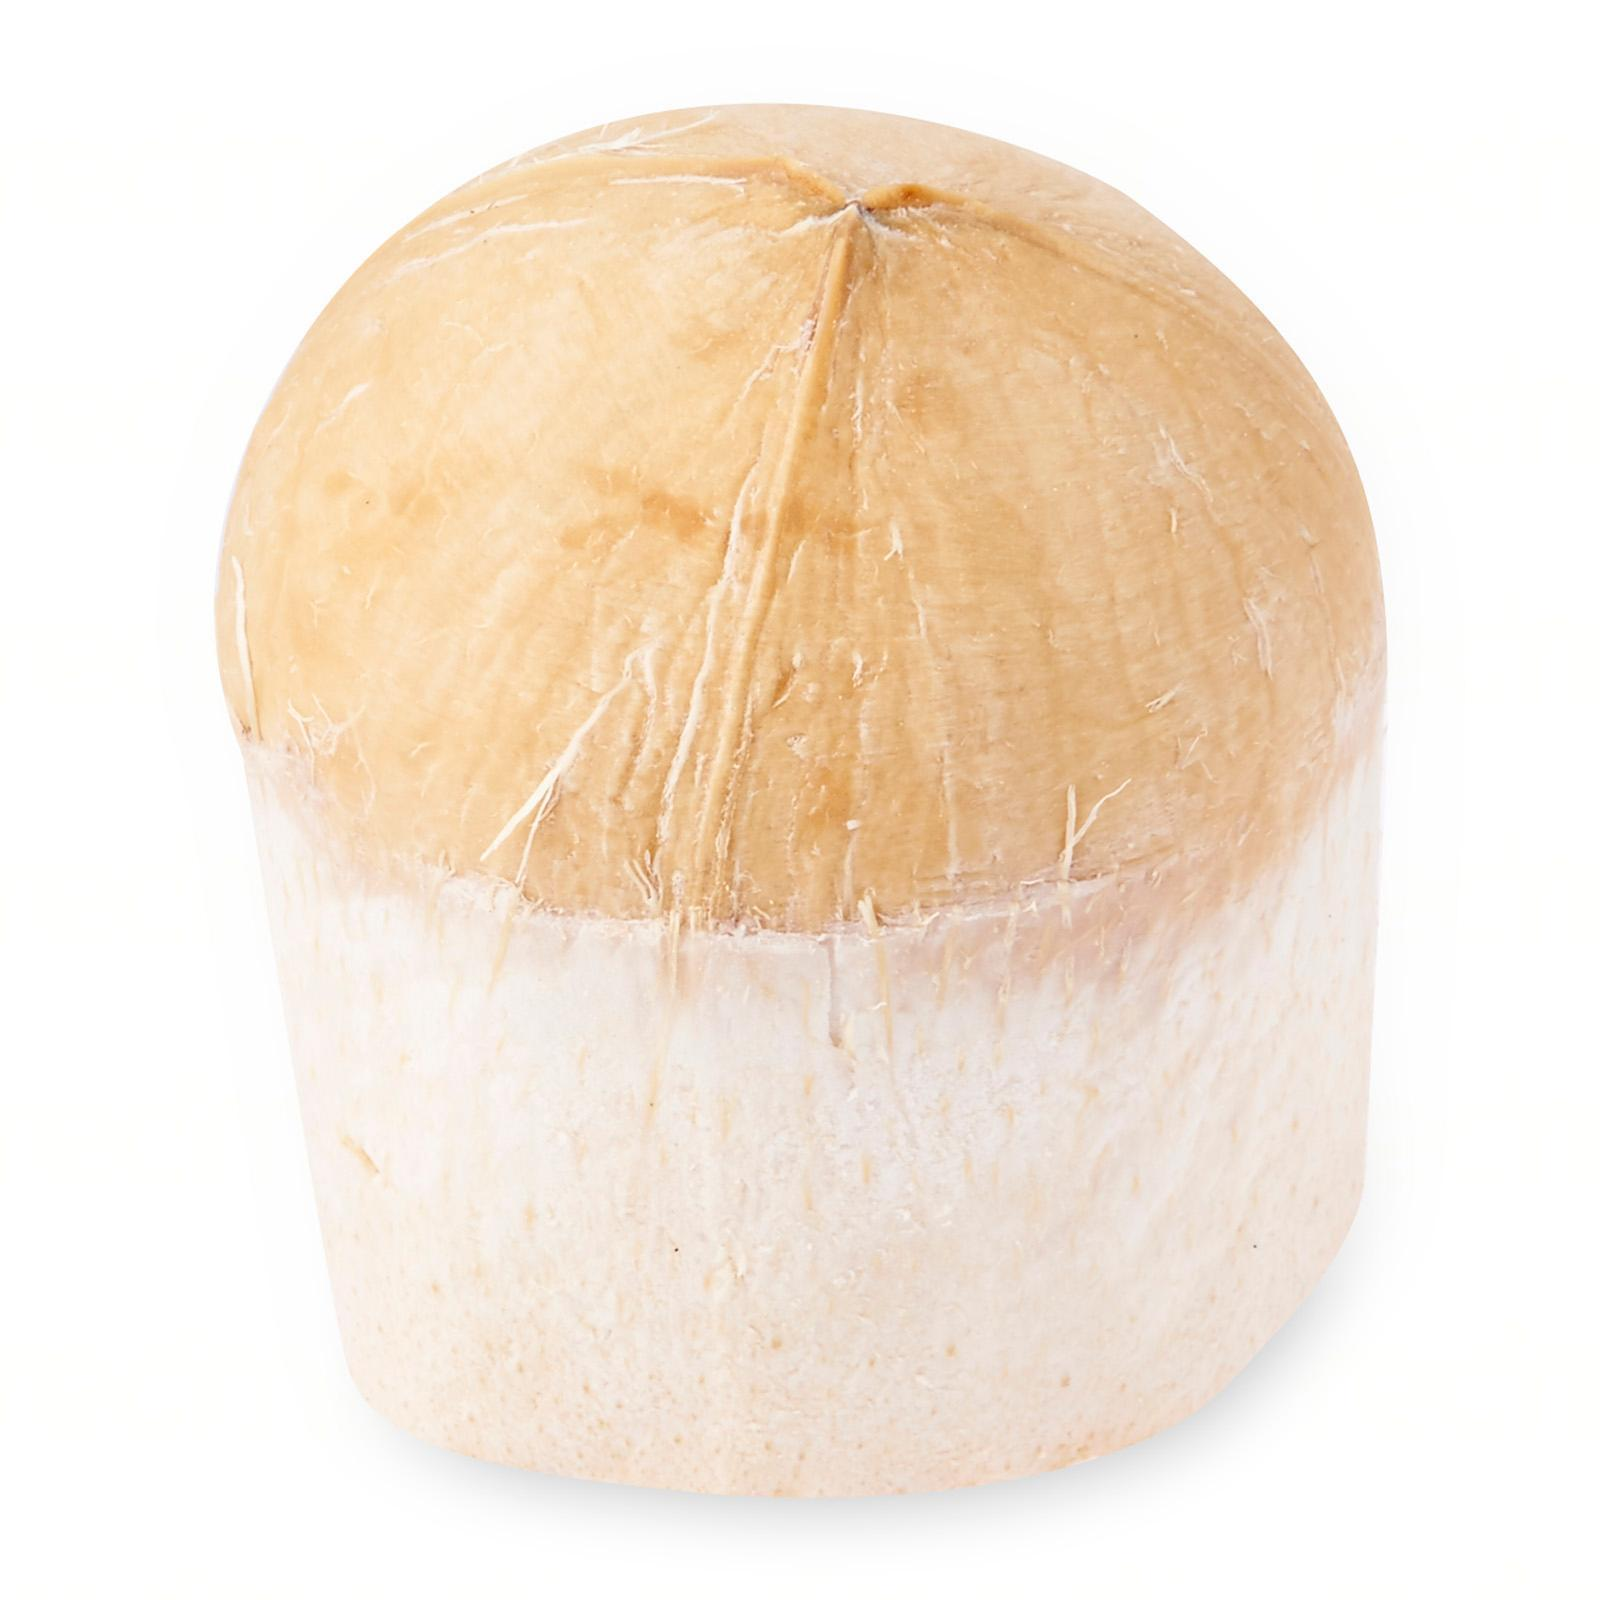 Quan Fa Organic Farm Organic Thai Fragrant Coconut By Redmart.